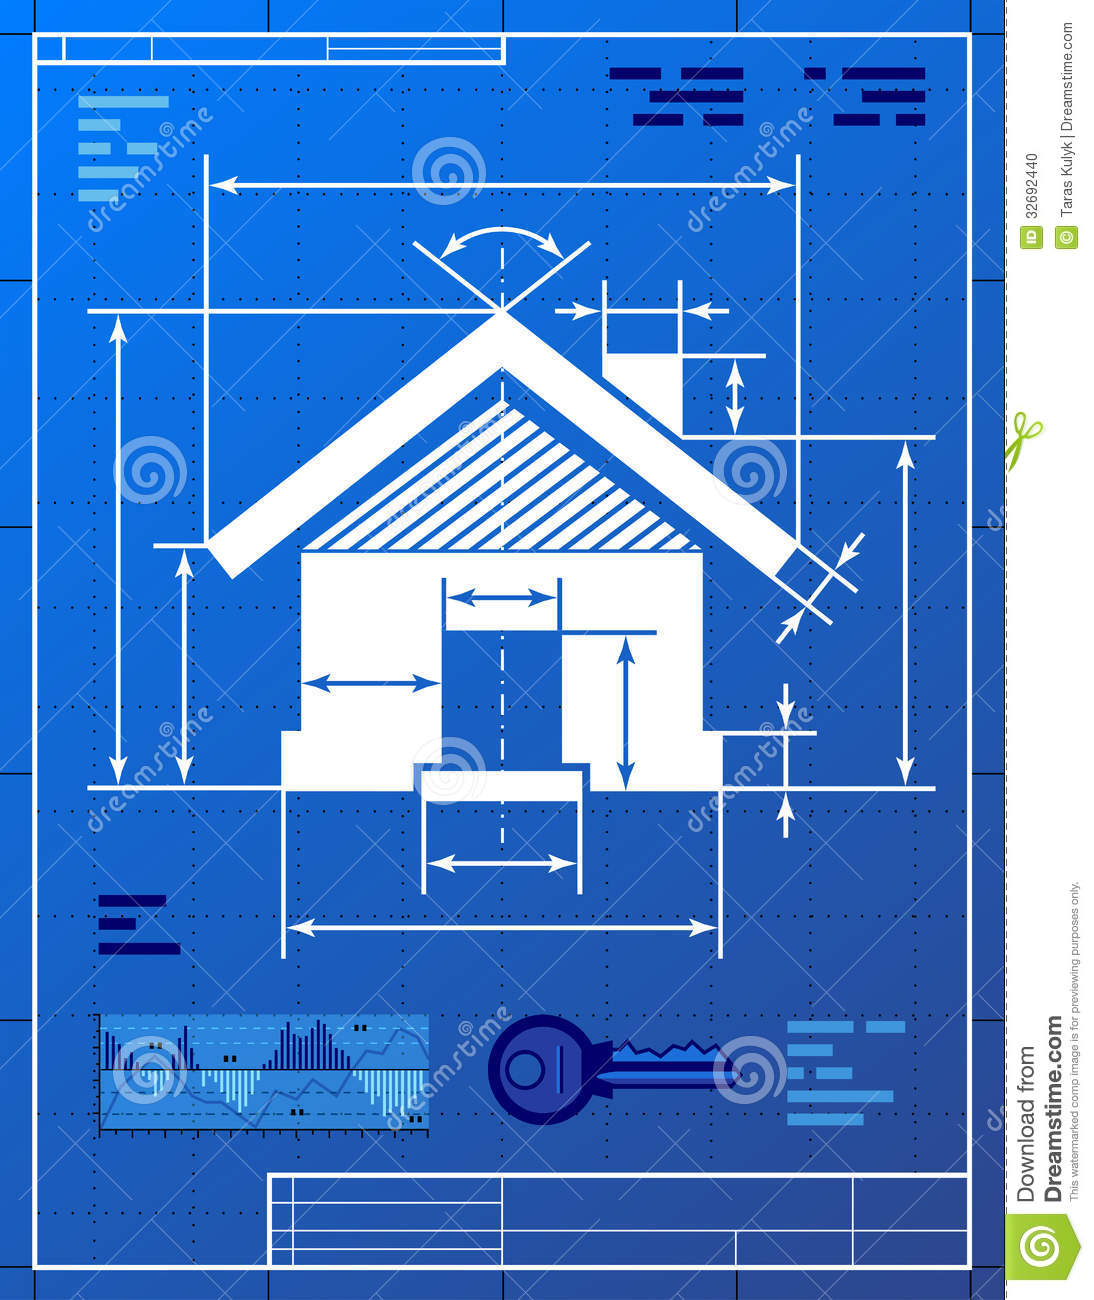 Home symbol like blueprint drawing stock vector illustration of download home symbol like blueprint drawing stock vector illustration of housing creation 32692440 malvernweather Image collections